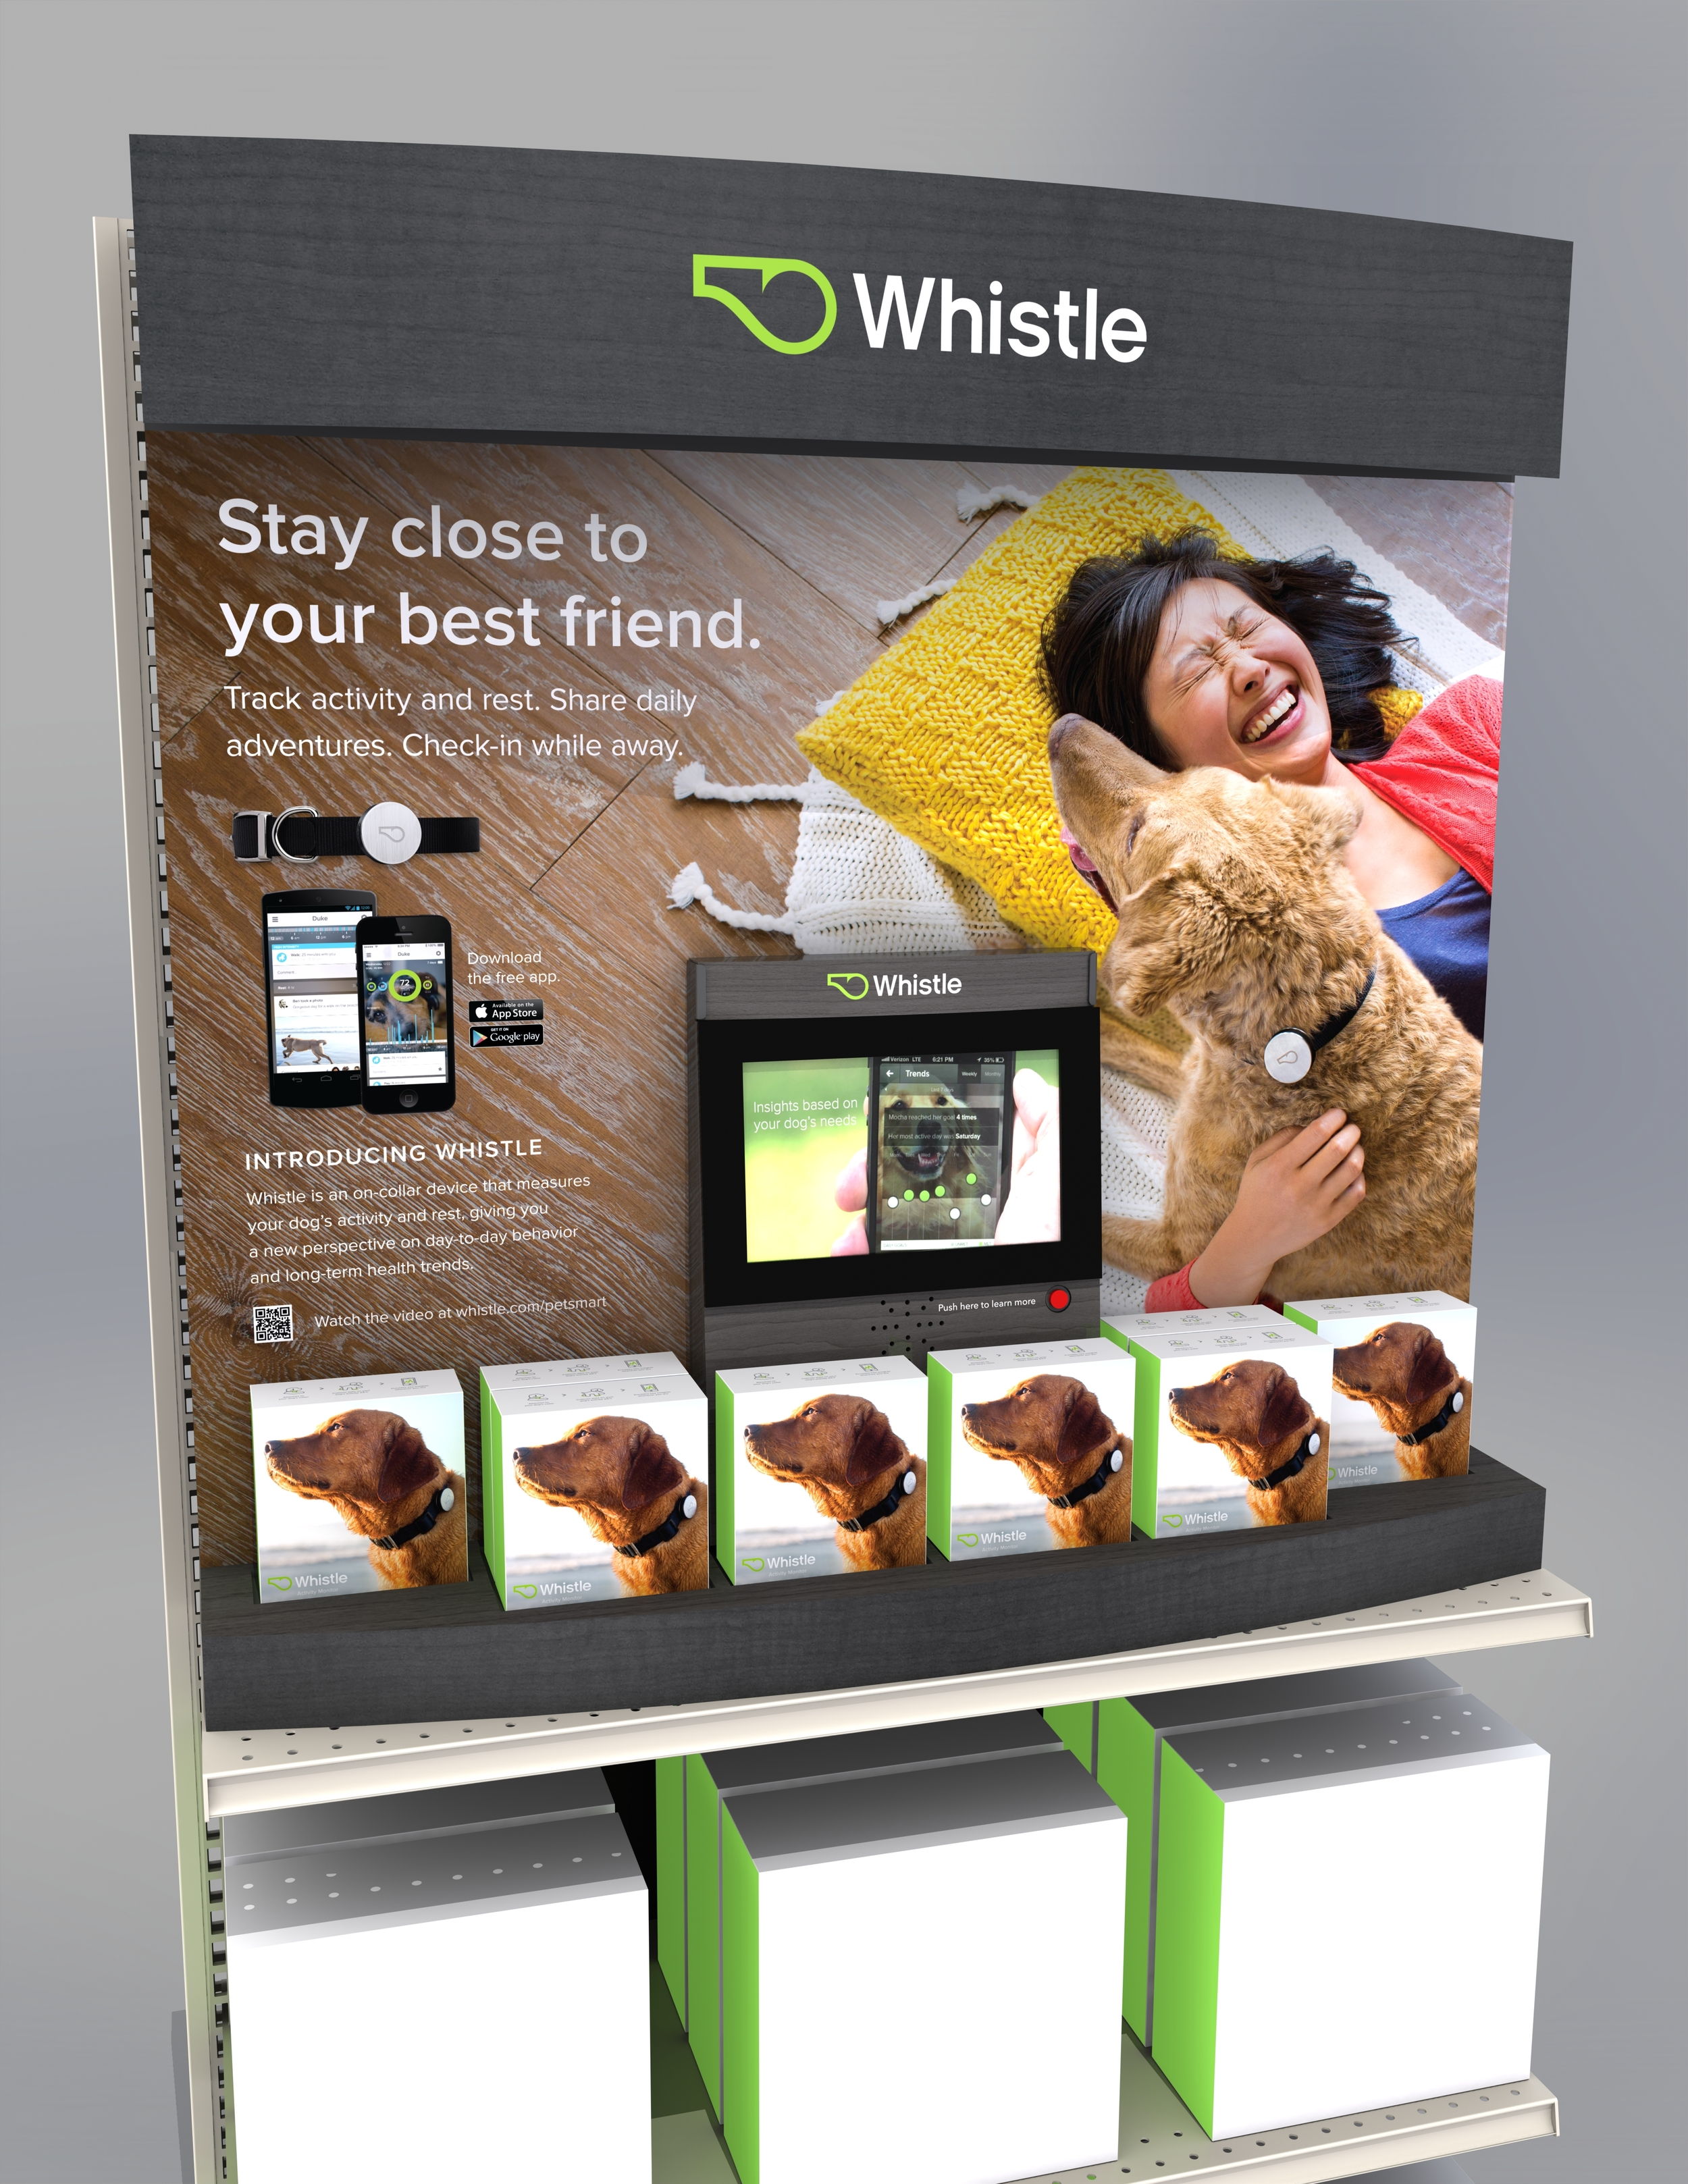 13912_whistle_campaign2.jpg